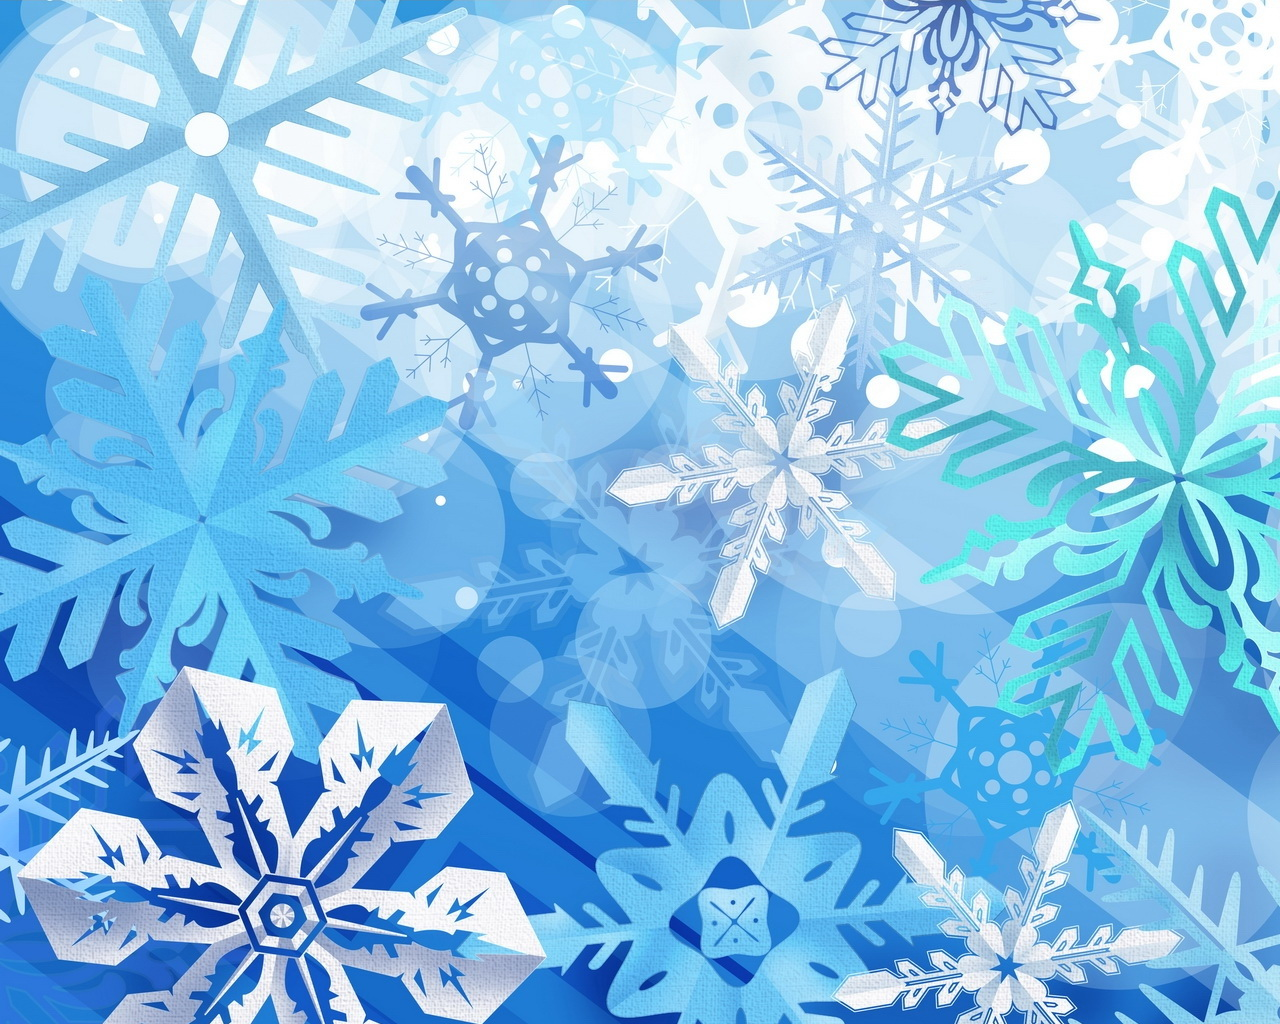 Holiday Winter snowflakes is blue colors in background you can use 1280x1024